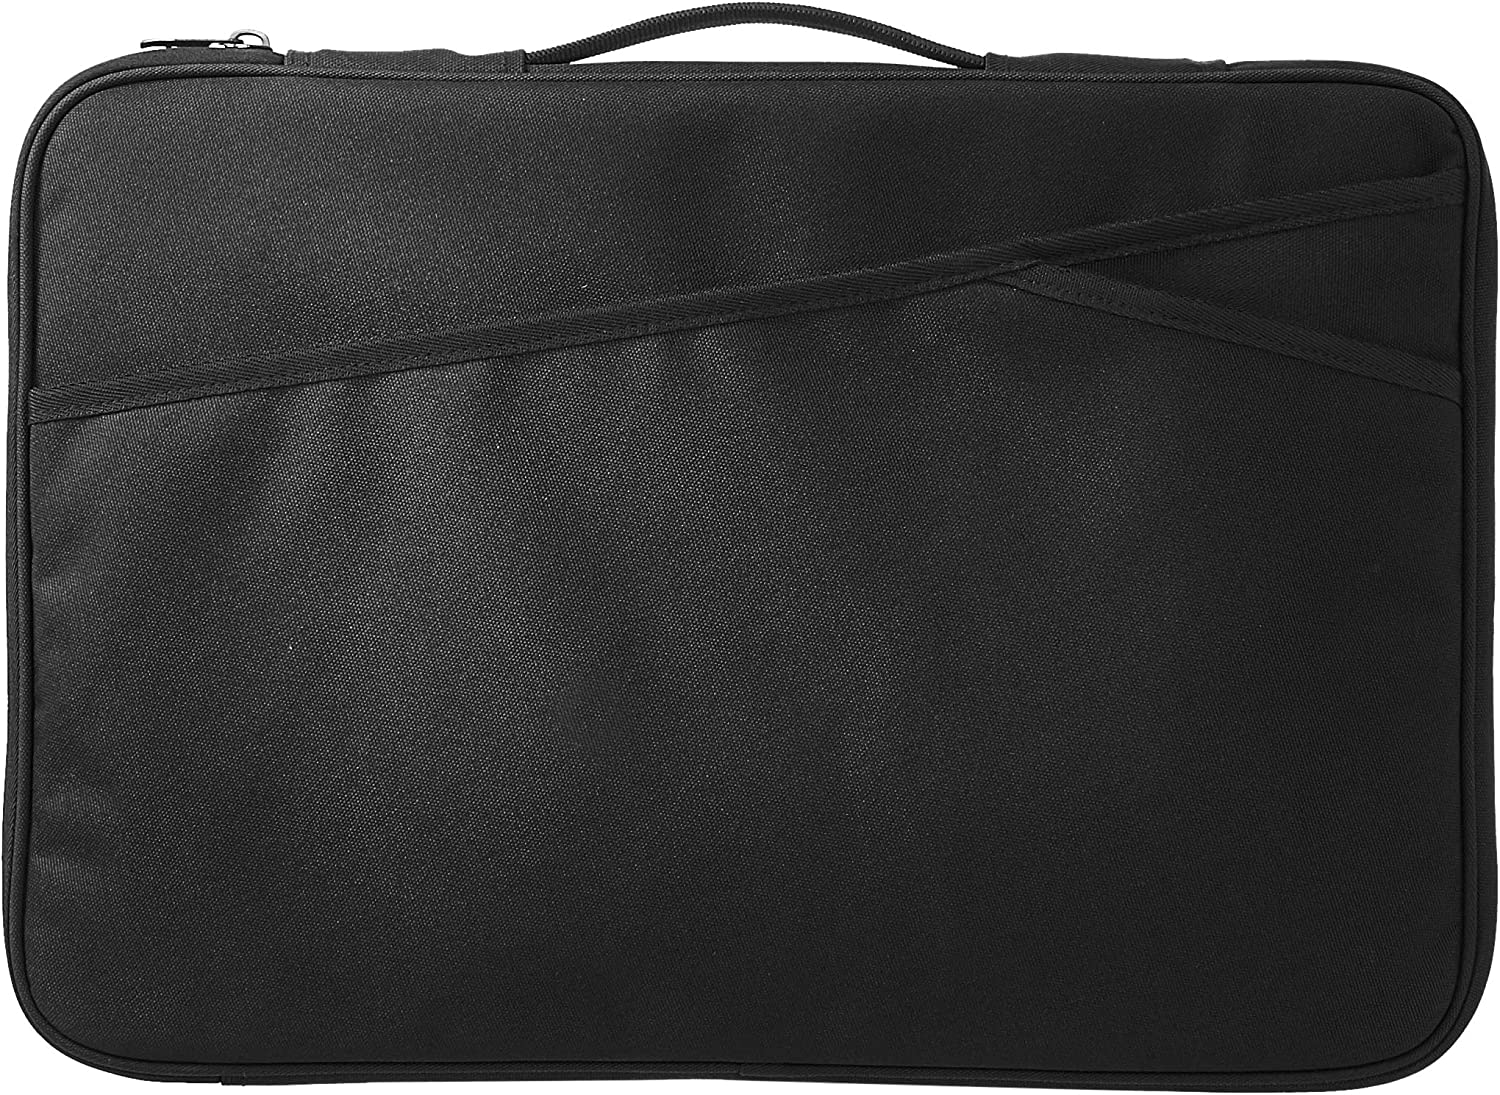 AmazonBasics Laptop Case Sleeve Bag - 17-Inch, Black